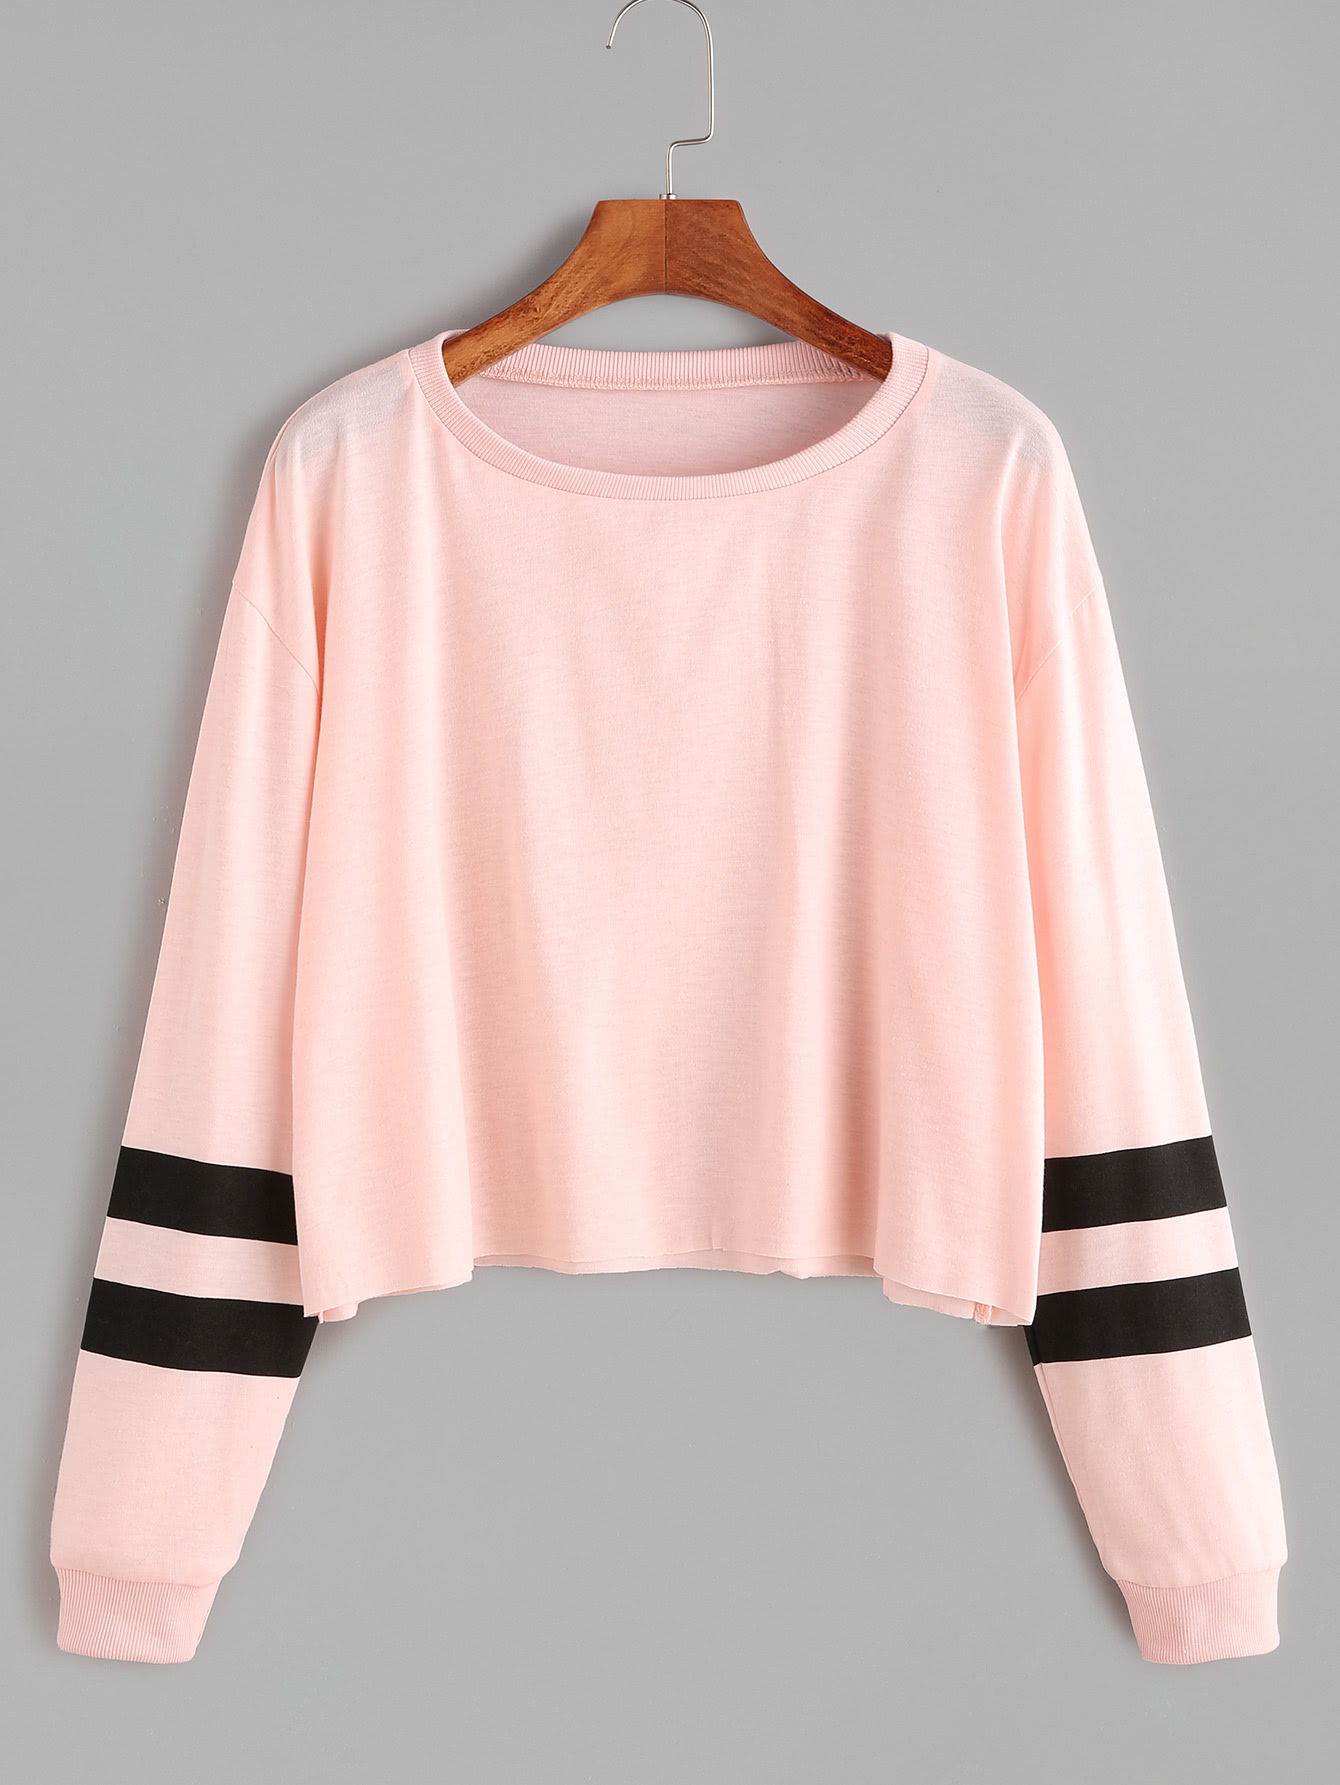 Pink Varsity Striped Sleeve Crop T Shirtfor Women Romwe